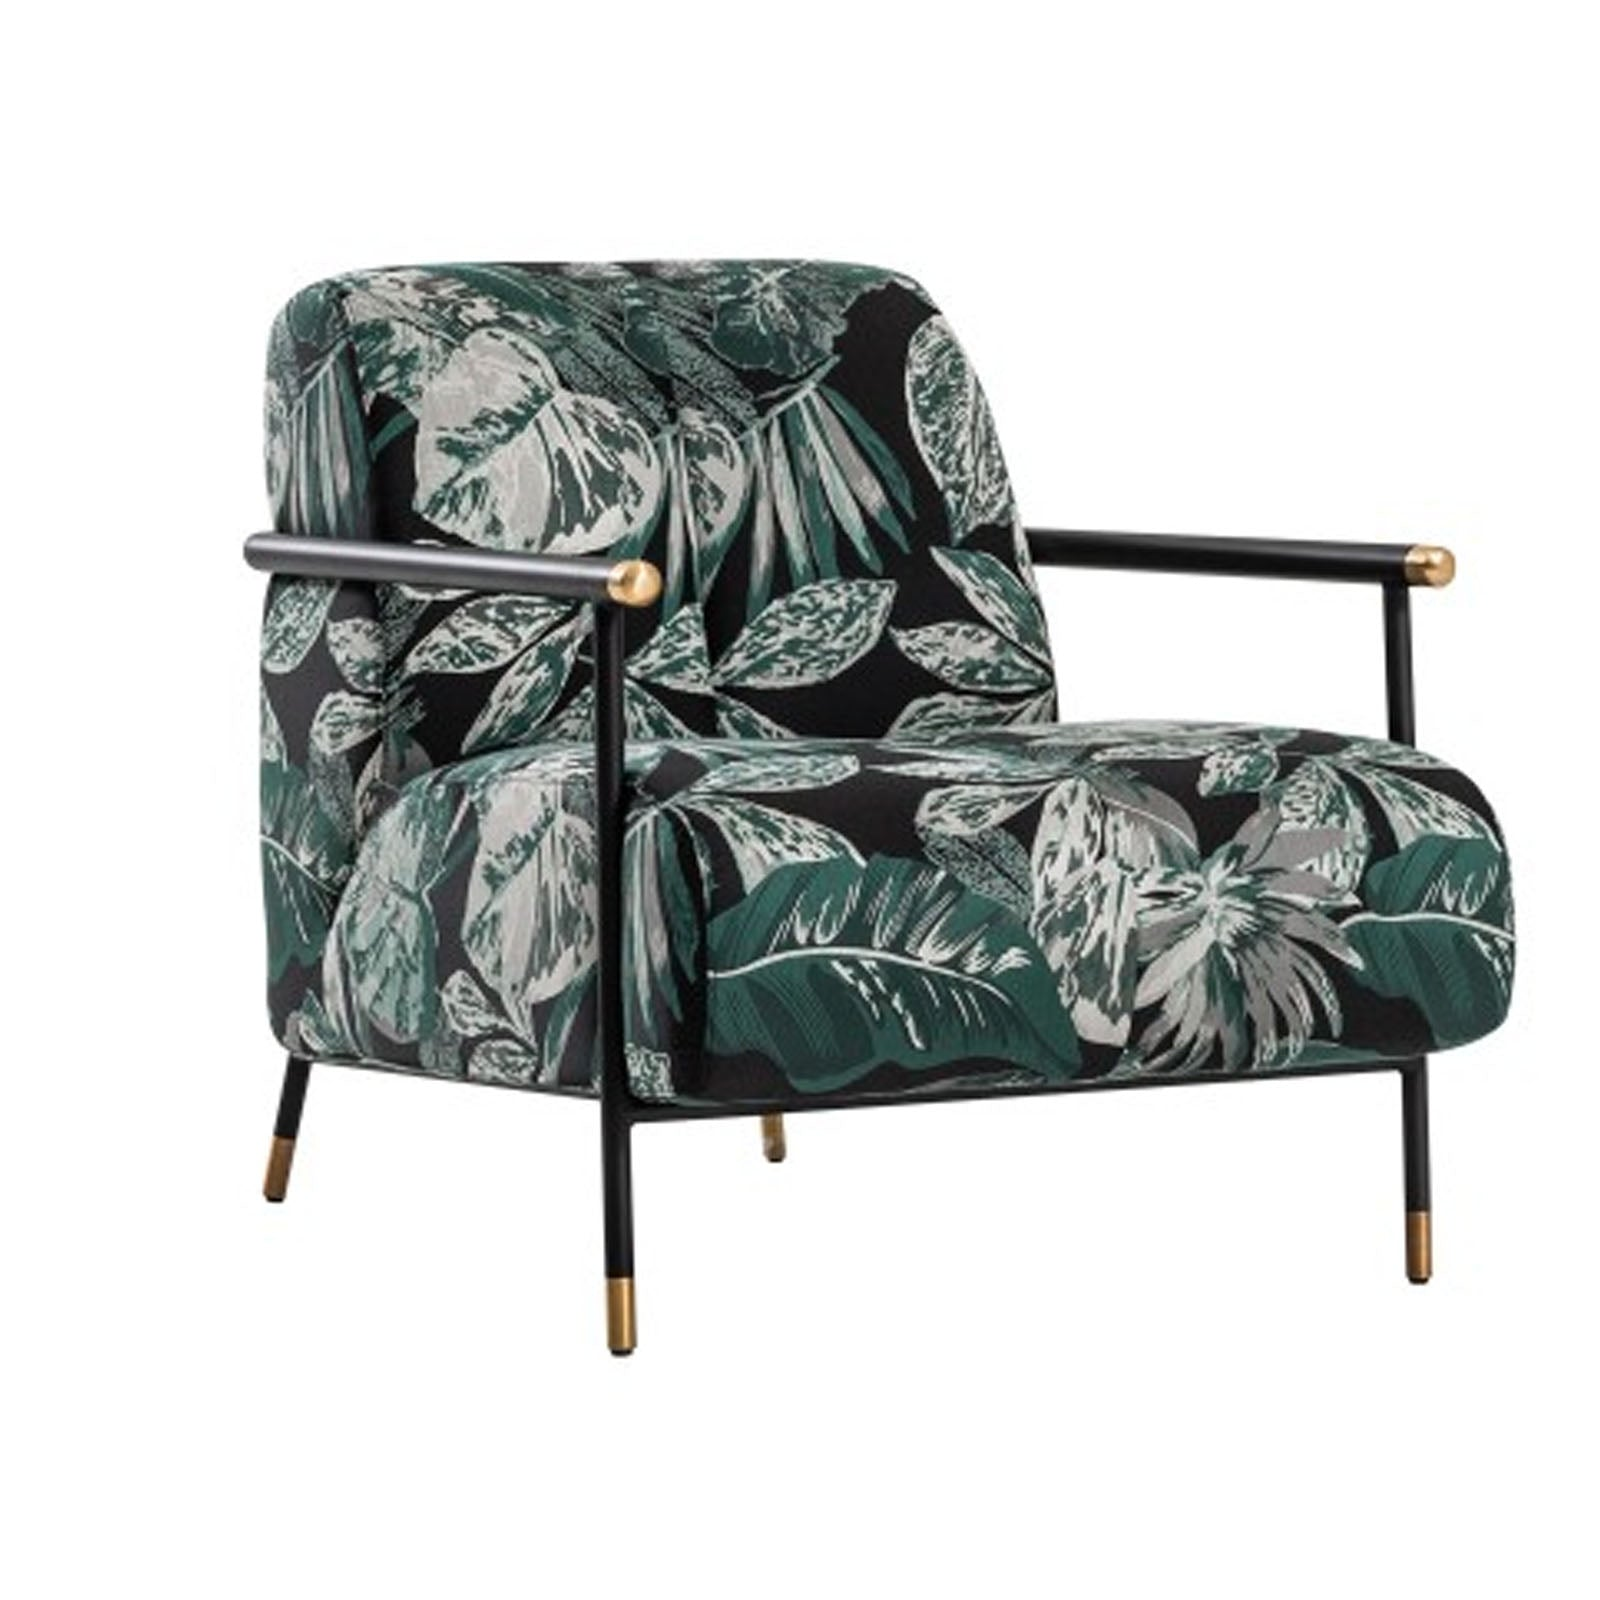 Amazon CALIFORNIA armchair  NICE001-AMA[Flora- Nice] -  كرسي بذراعين أمازون كاليفورنيا - Shop Online Furniture and Home Decor Store in Dubai, UAE at ebarza